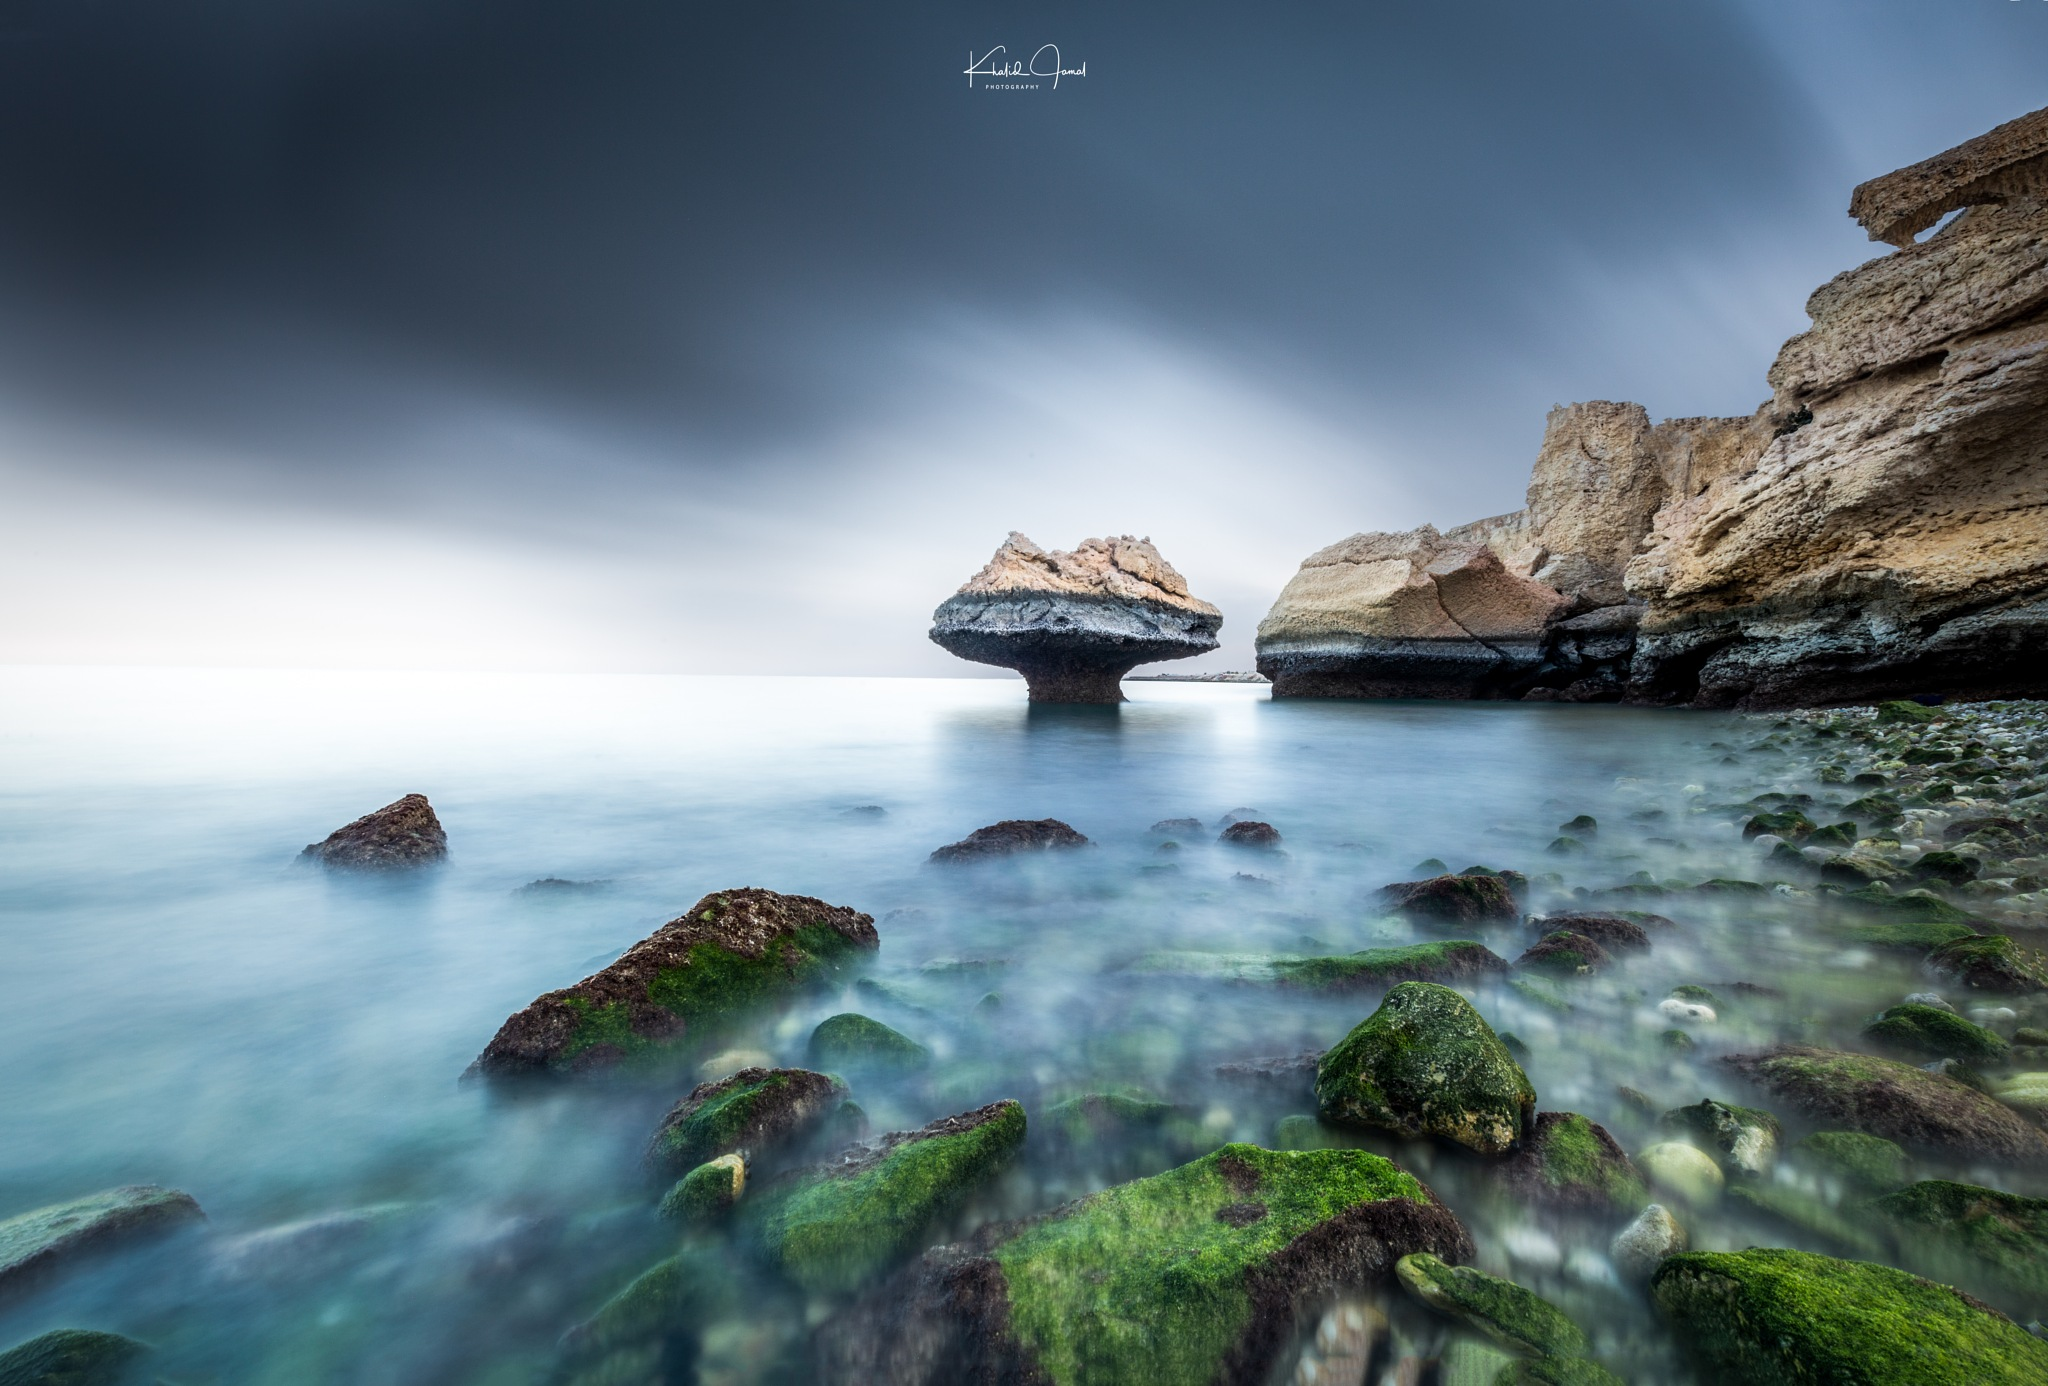 The Mushroom Coast by Khalid Jamal Abdullah